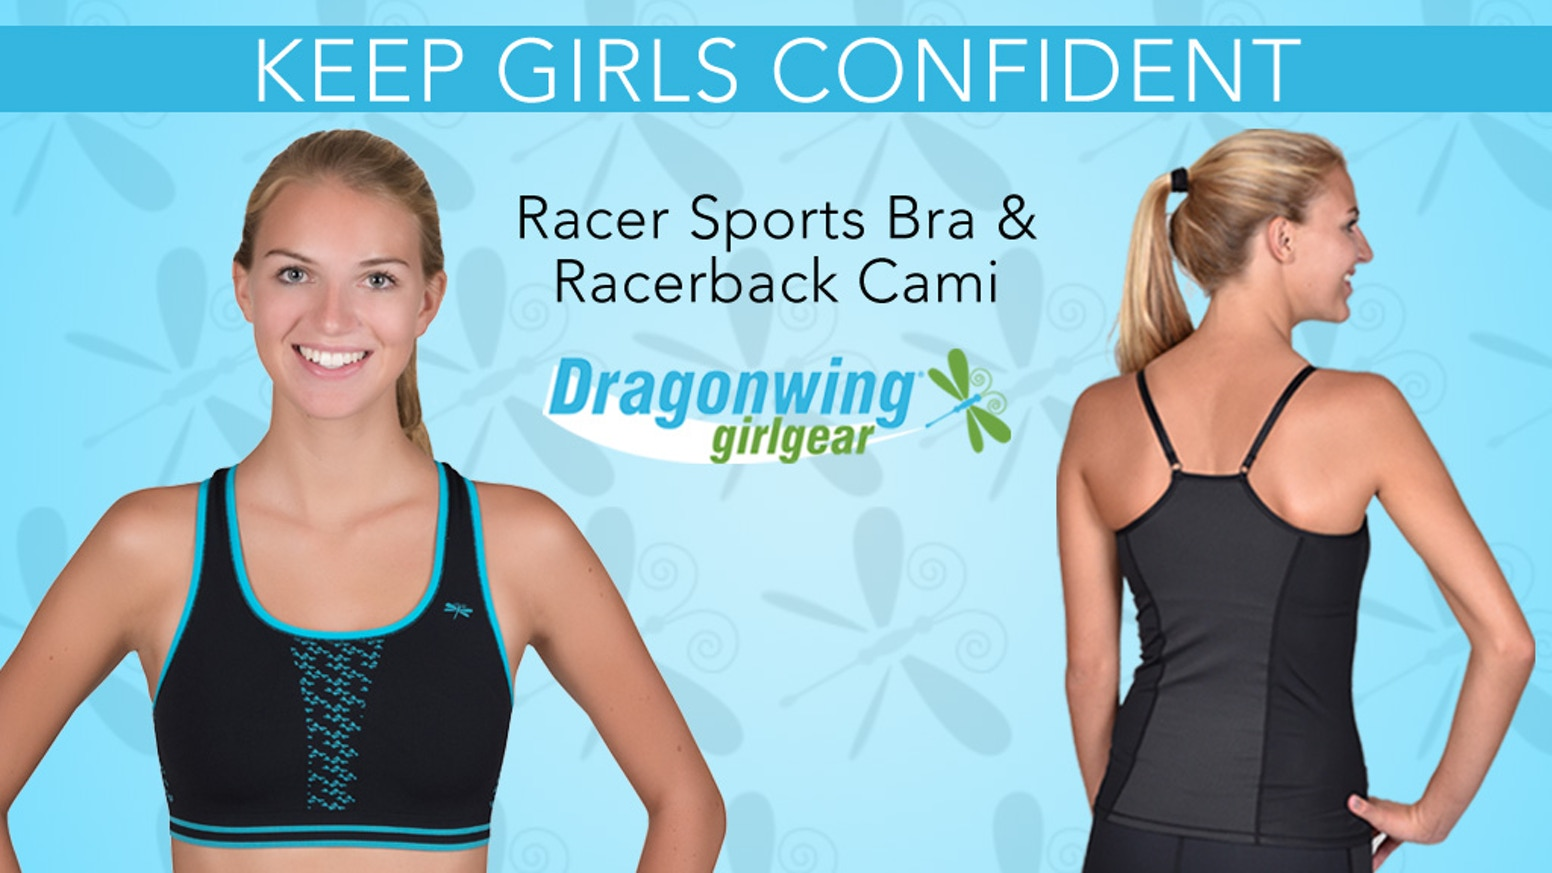 Racer Sports Bra + Racerback Cami. Super High Performance, Wicking, Antimicrobial, Breathable Silver-infused Mesh. Designed for Girls.